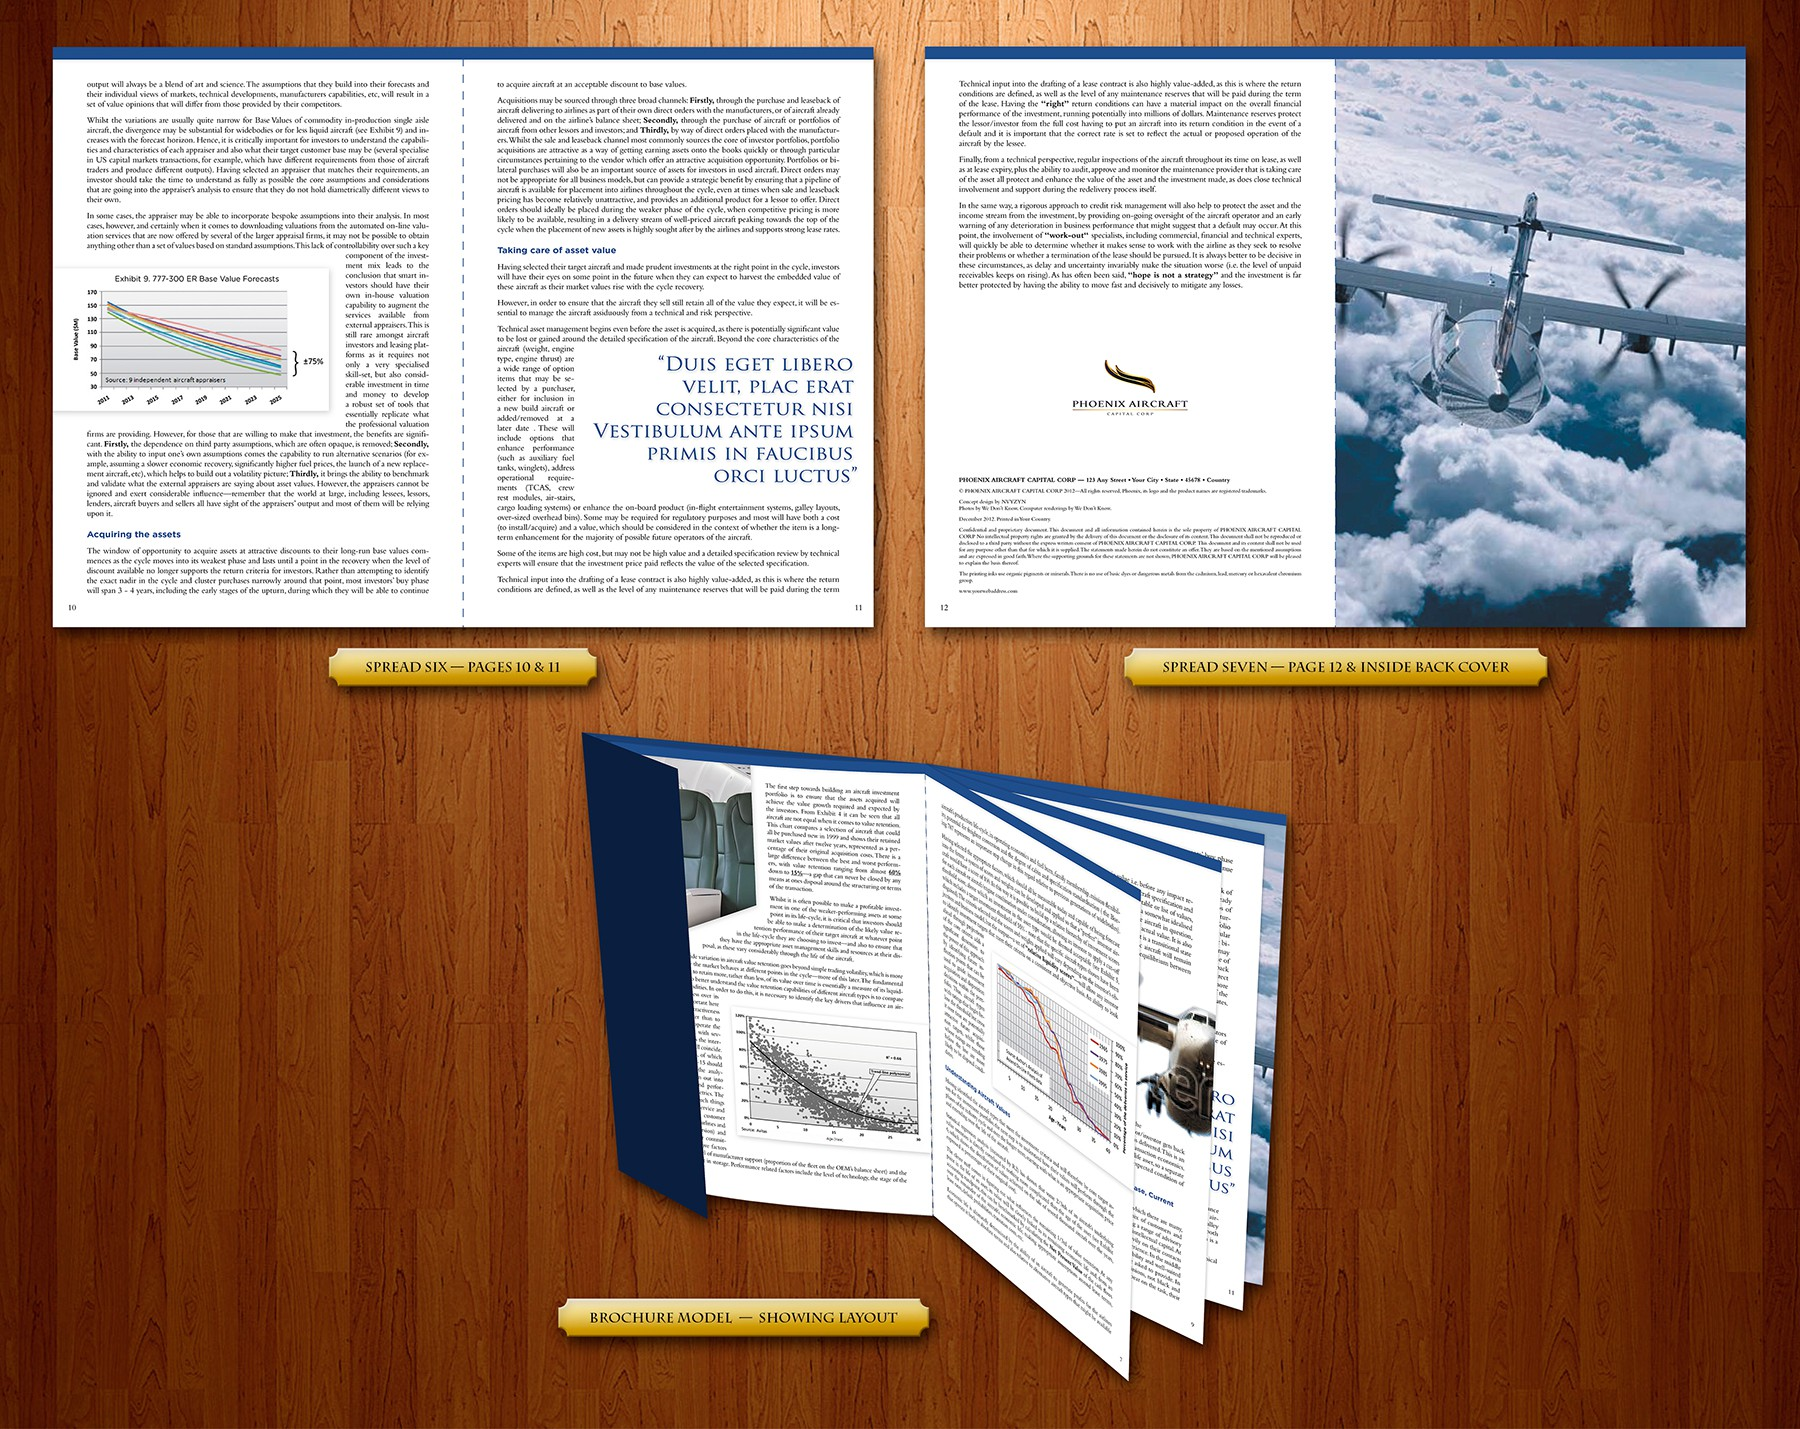 Help Phoenix Aircraft Capital Corp with a new brochure design